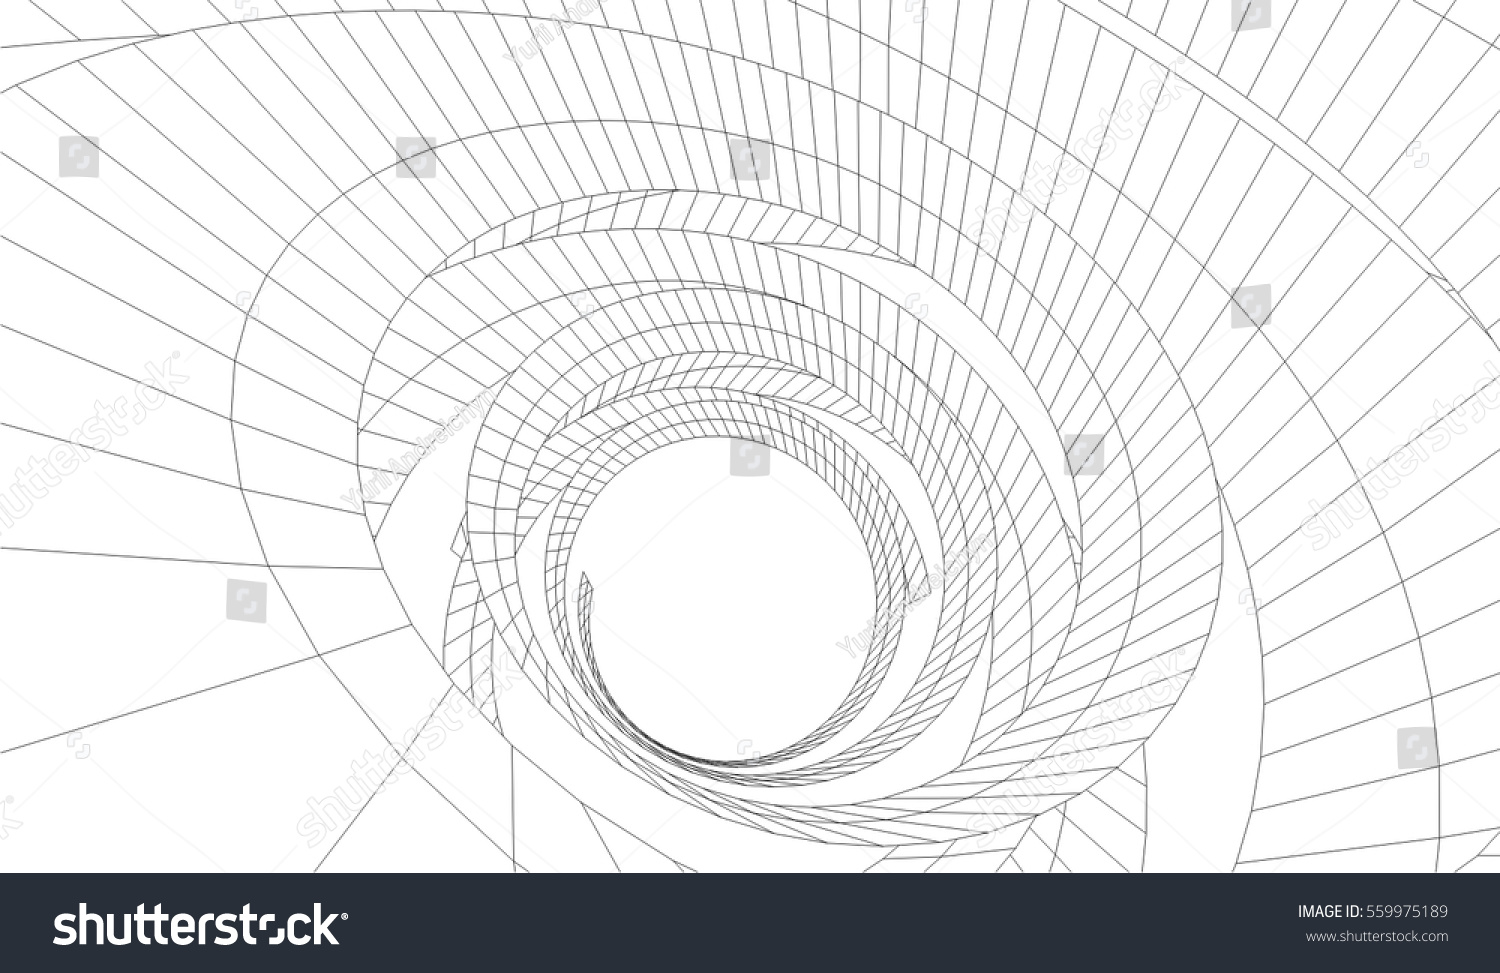 3d abstract architectural design - photo #22